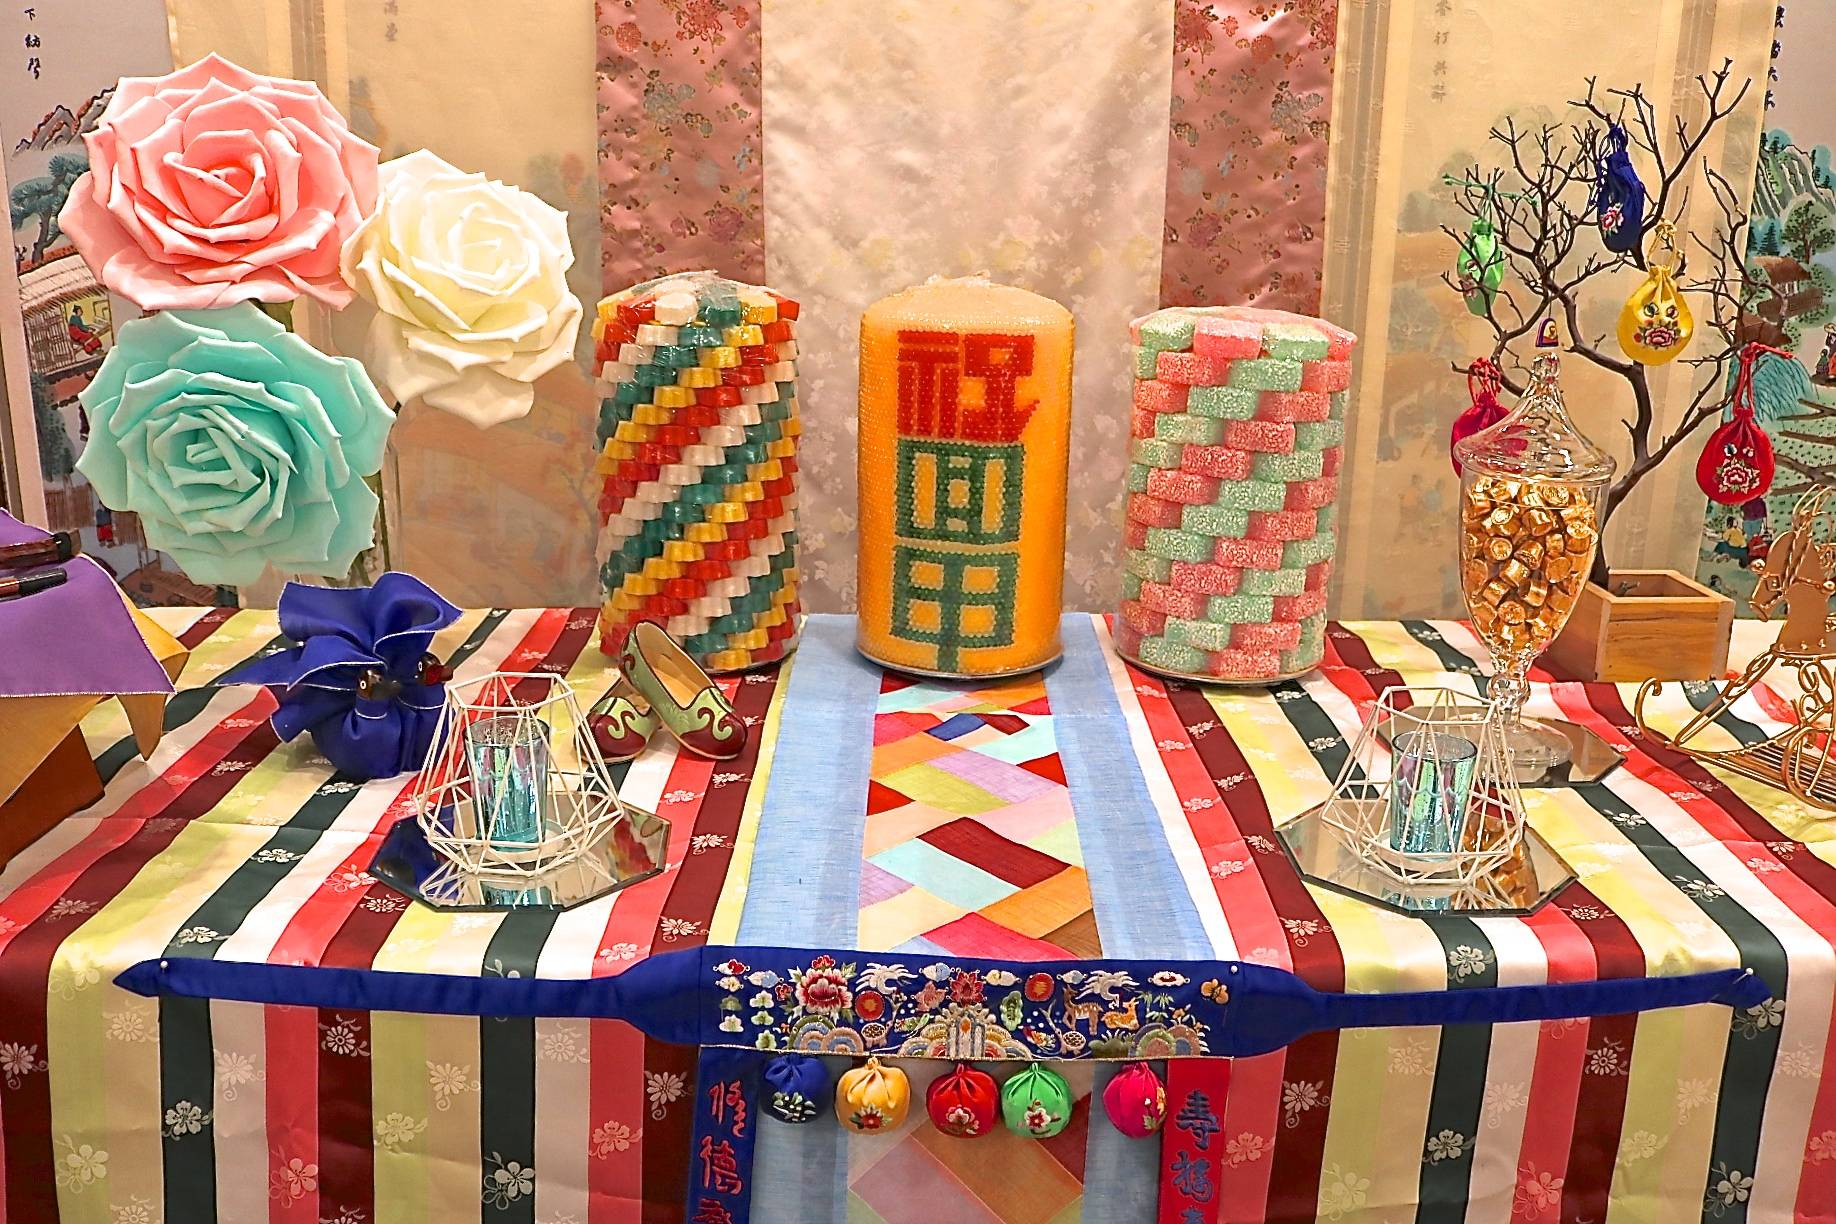 DOL TABLE SETTING FOR BABY'S FIRST YEAR BIRTHDAY